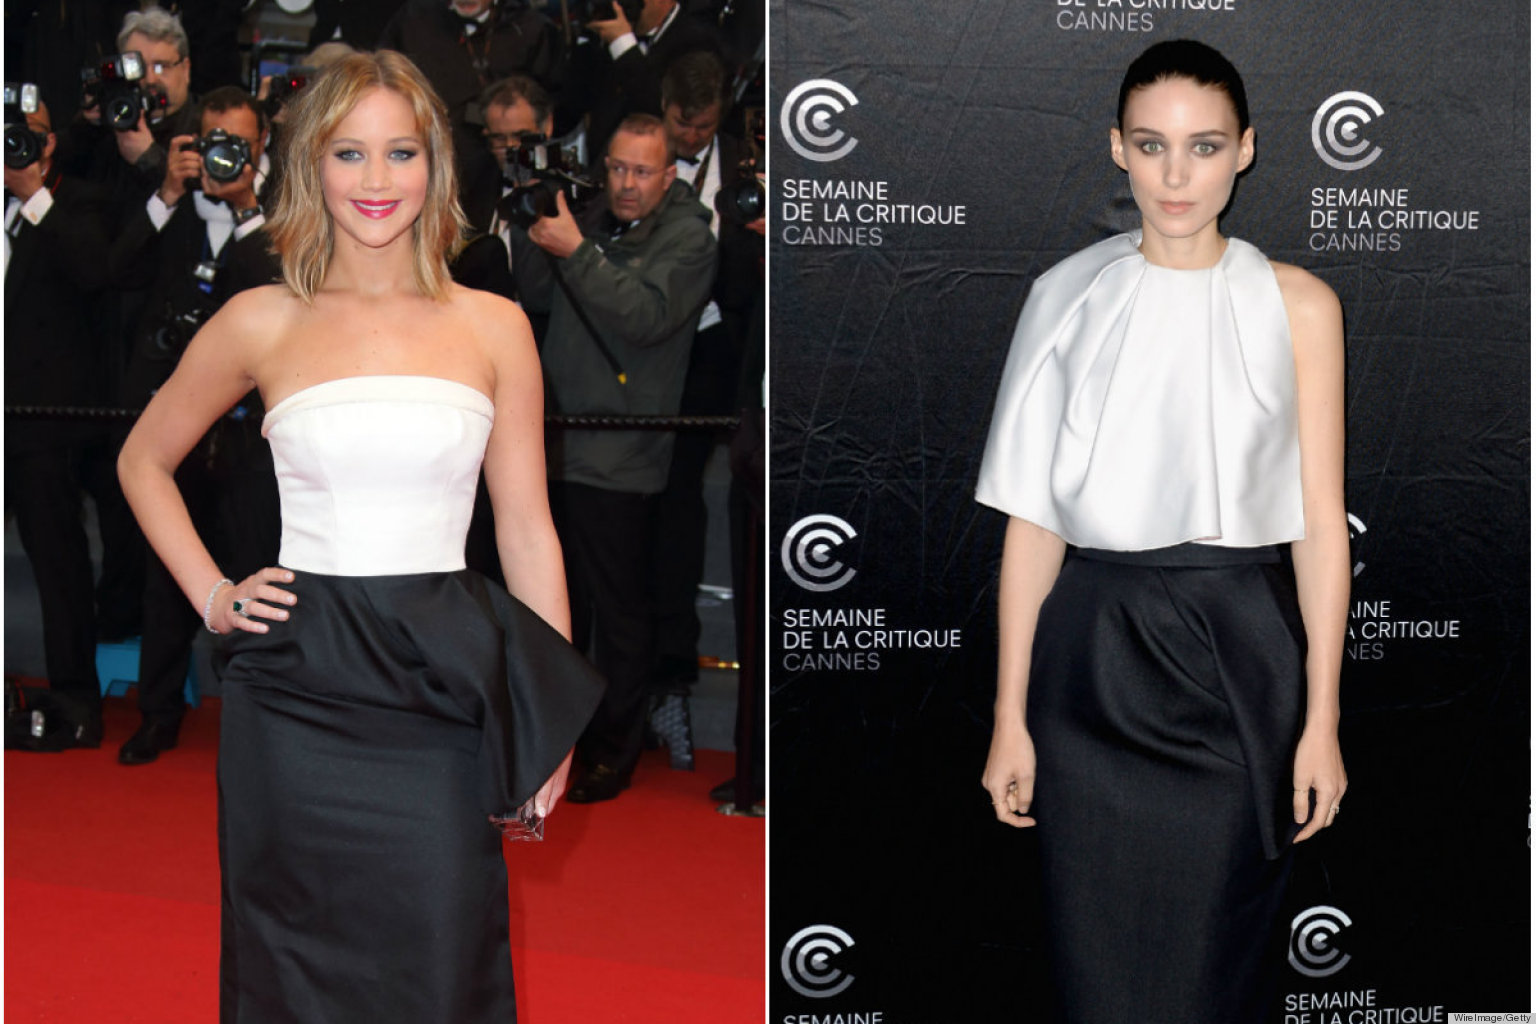 PHOTOS: Rooney Mara & Jennifer Lawrence Look Awfully Similar...